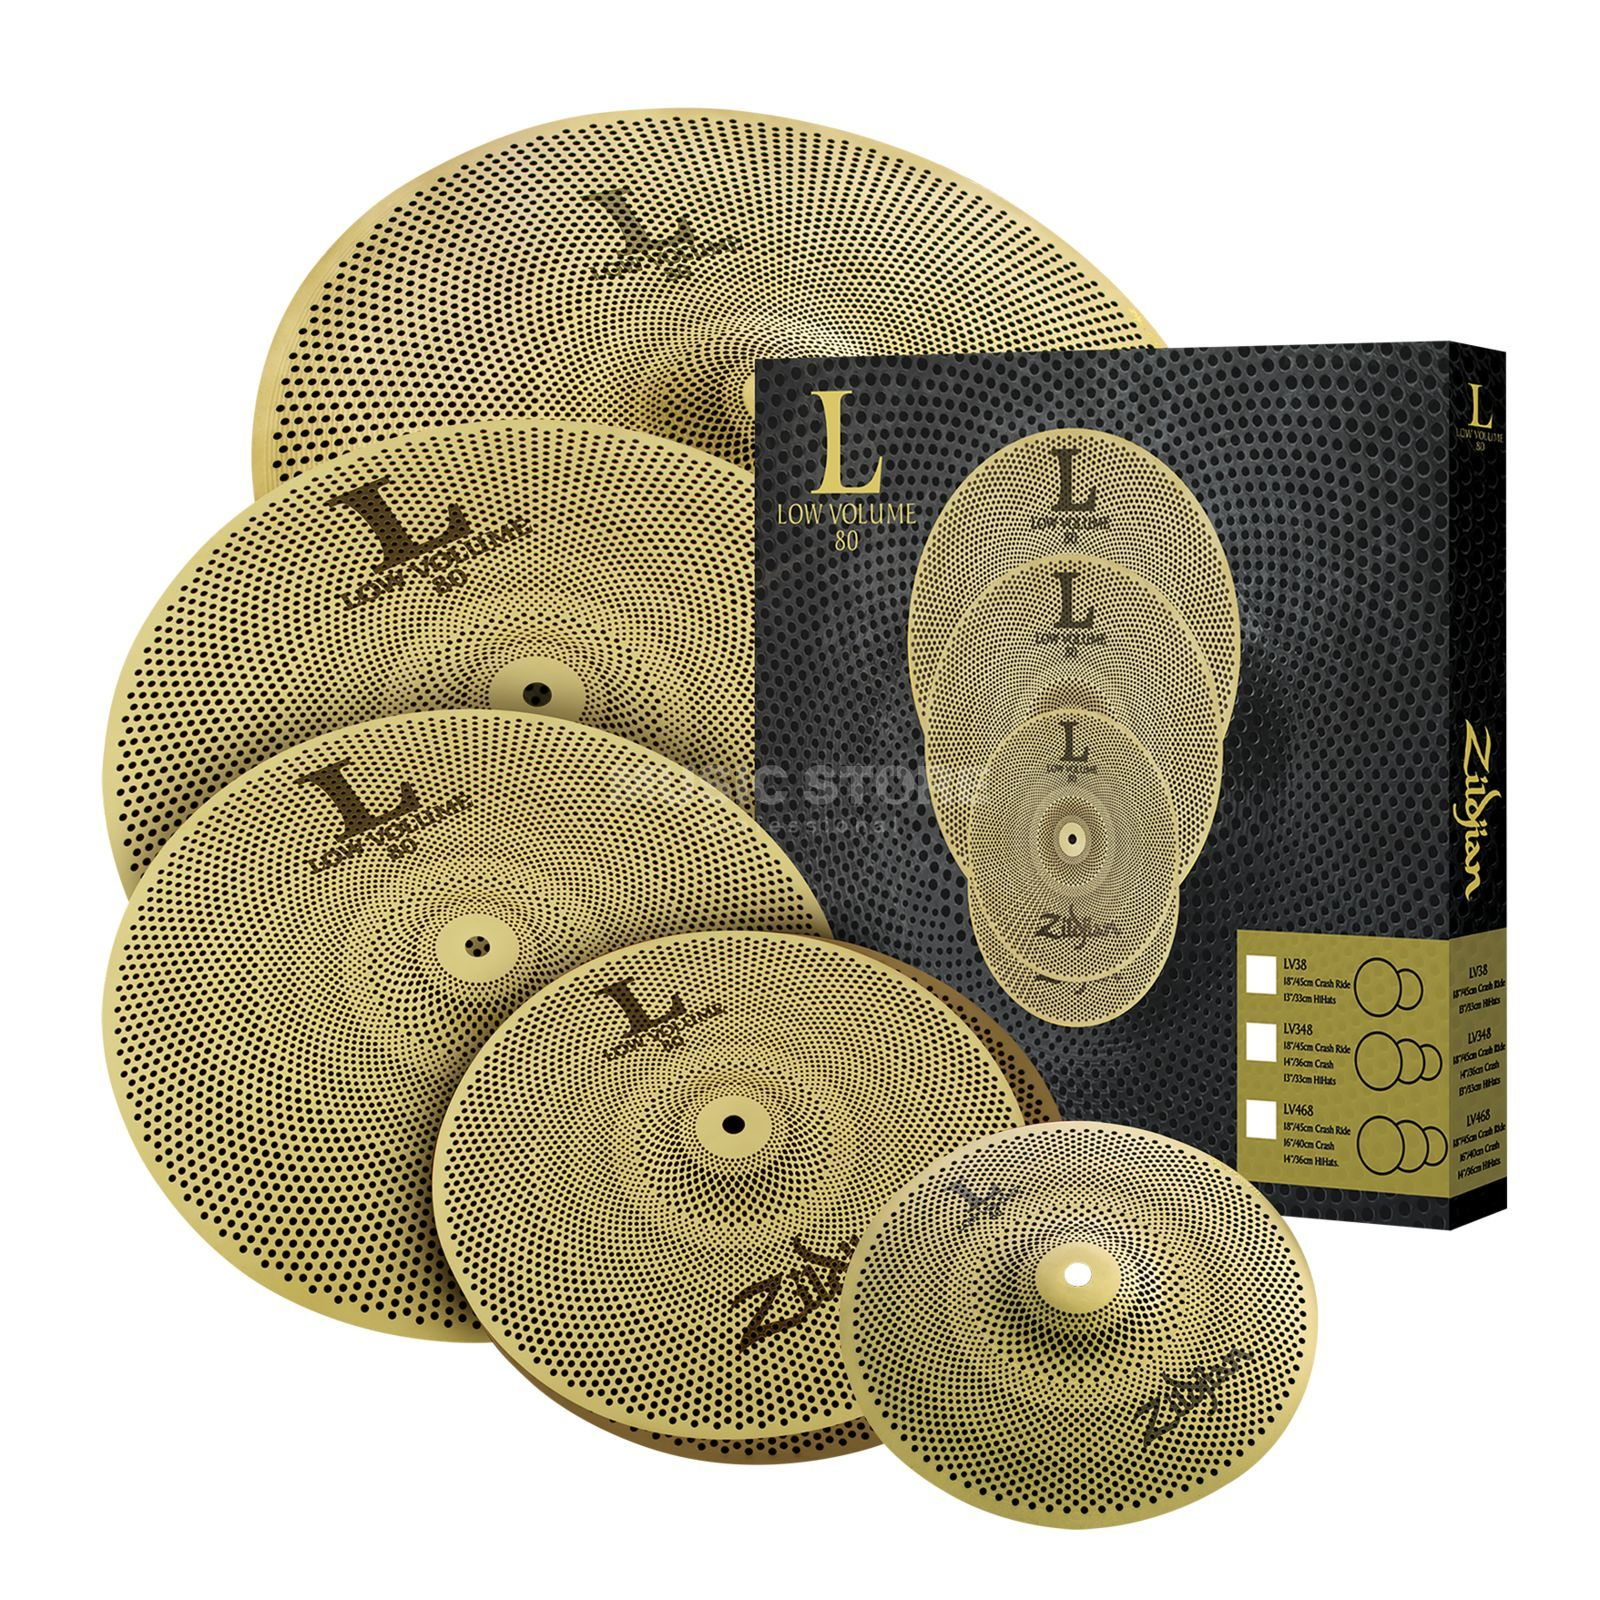 Zildjian L80 Low Volume LV468 Full Pack Product Image